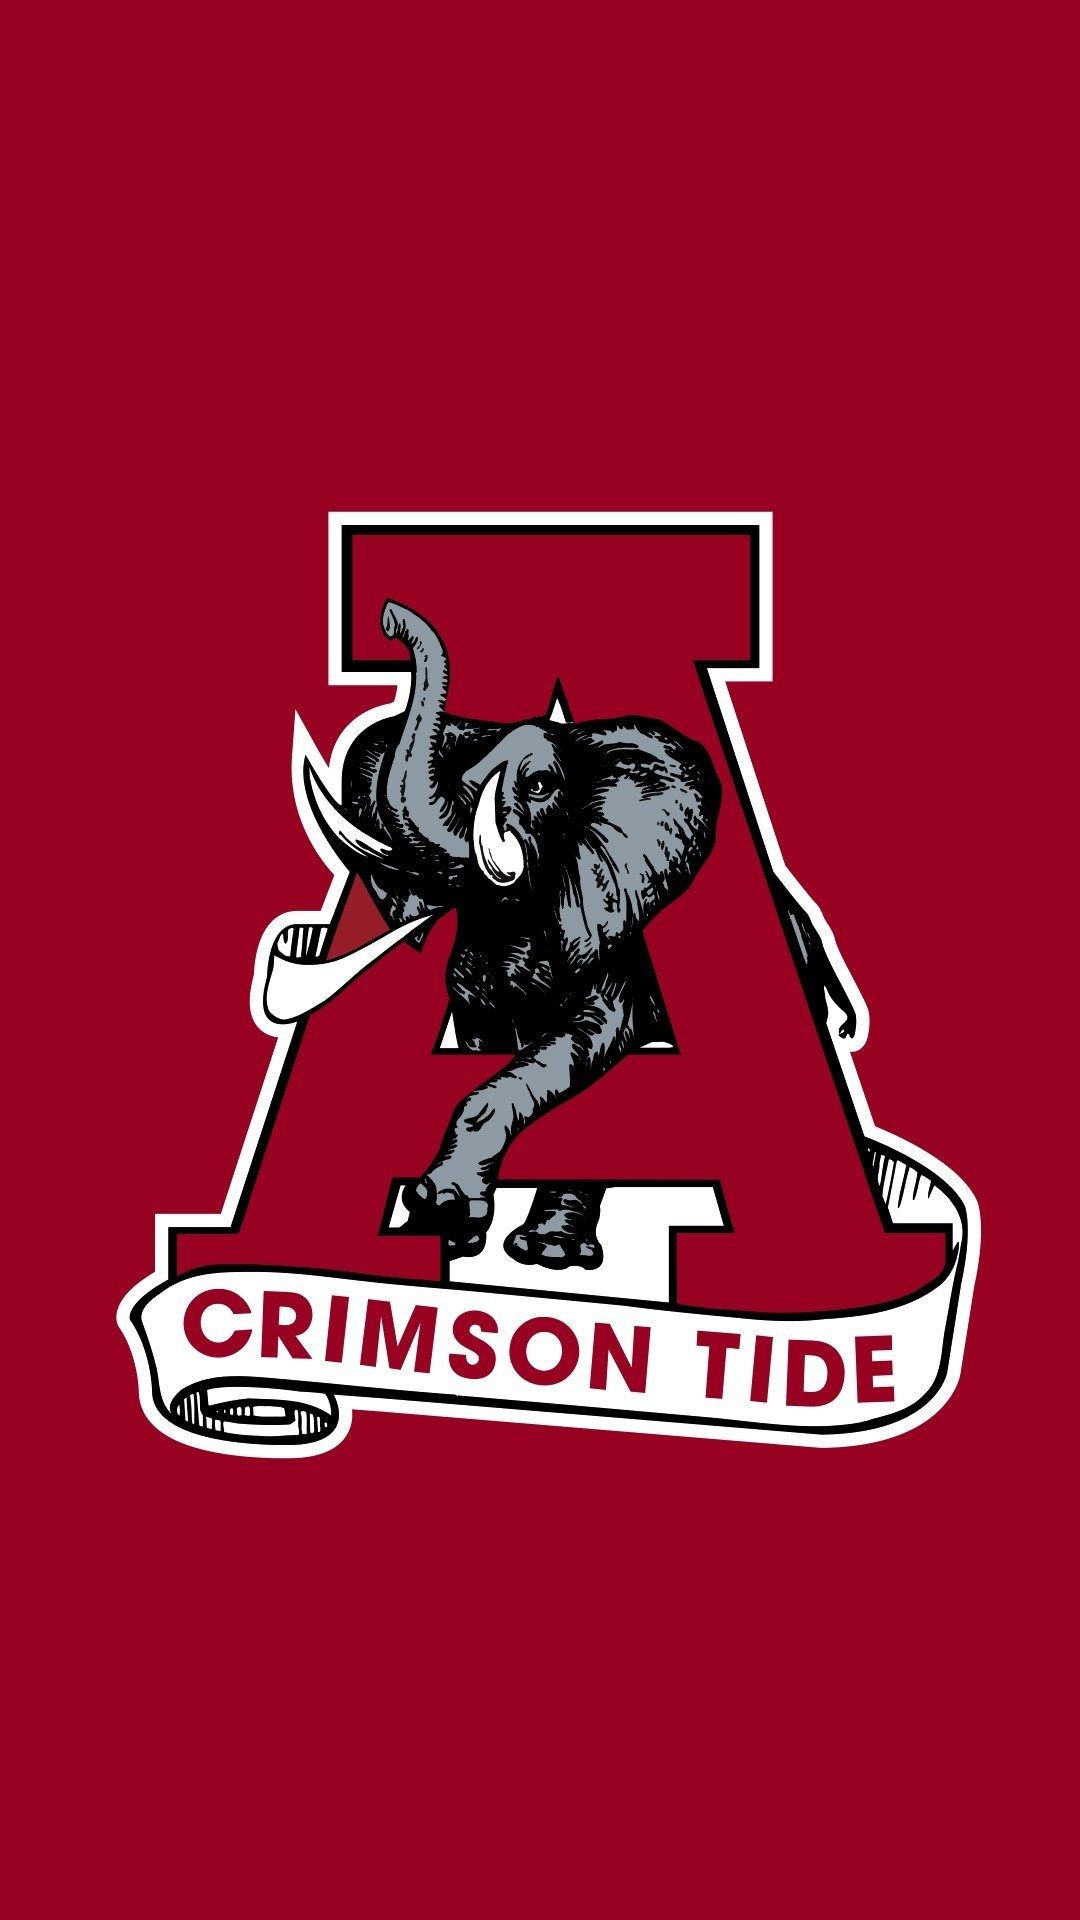 Free Alabama Wallpapers For Mobile Phones Hd Wallpapers Wallpapers Download High Resolution Wallpapers Alabama Wallpaper Alabama Crimson Tide Football Wallpaper Alabama Crimson Tide Logo